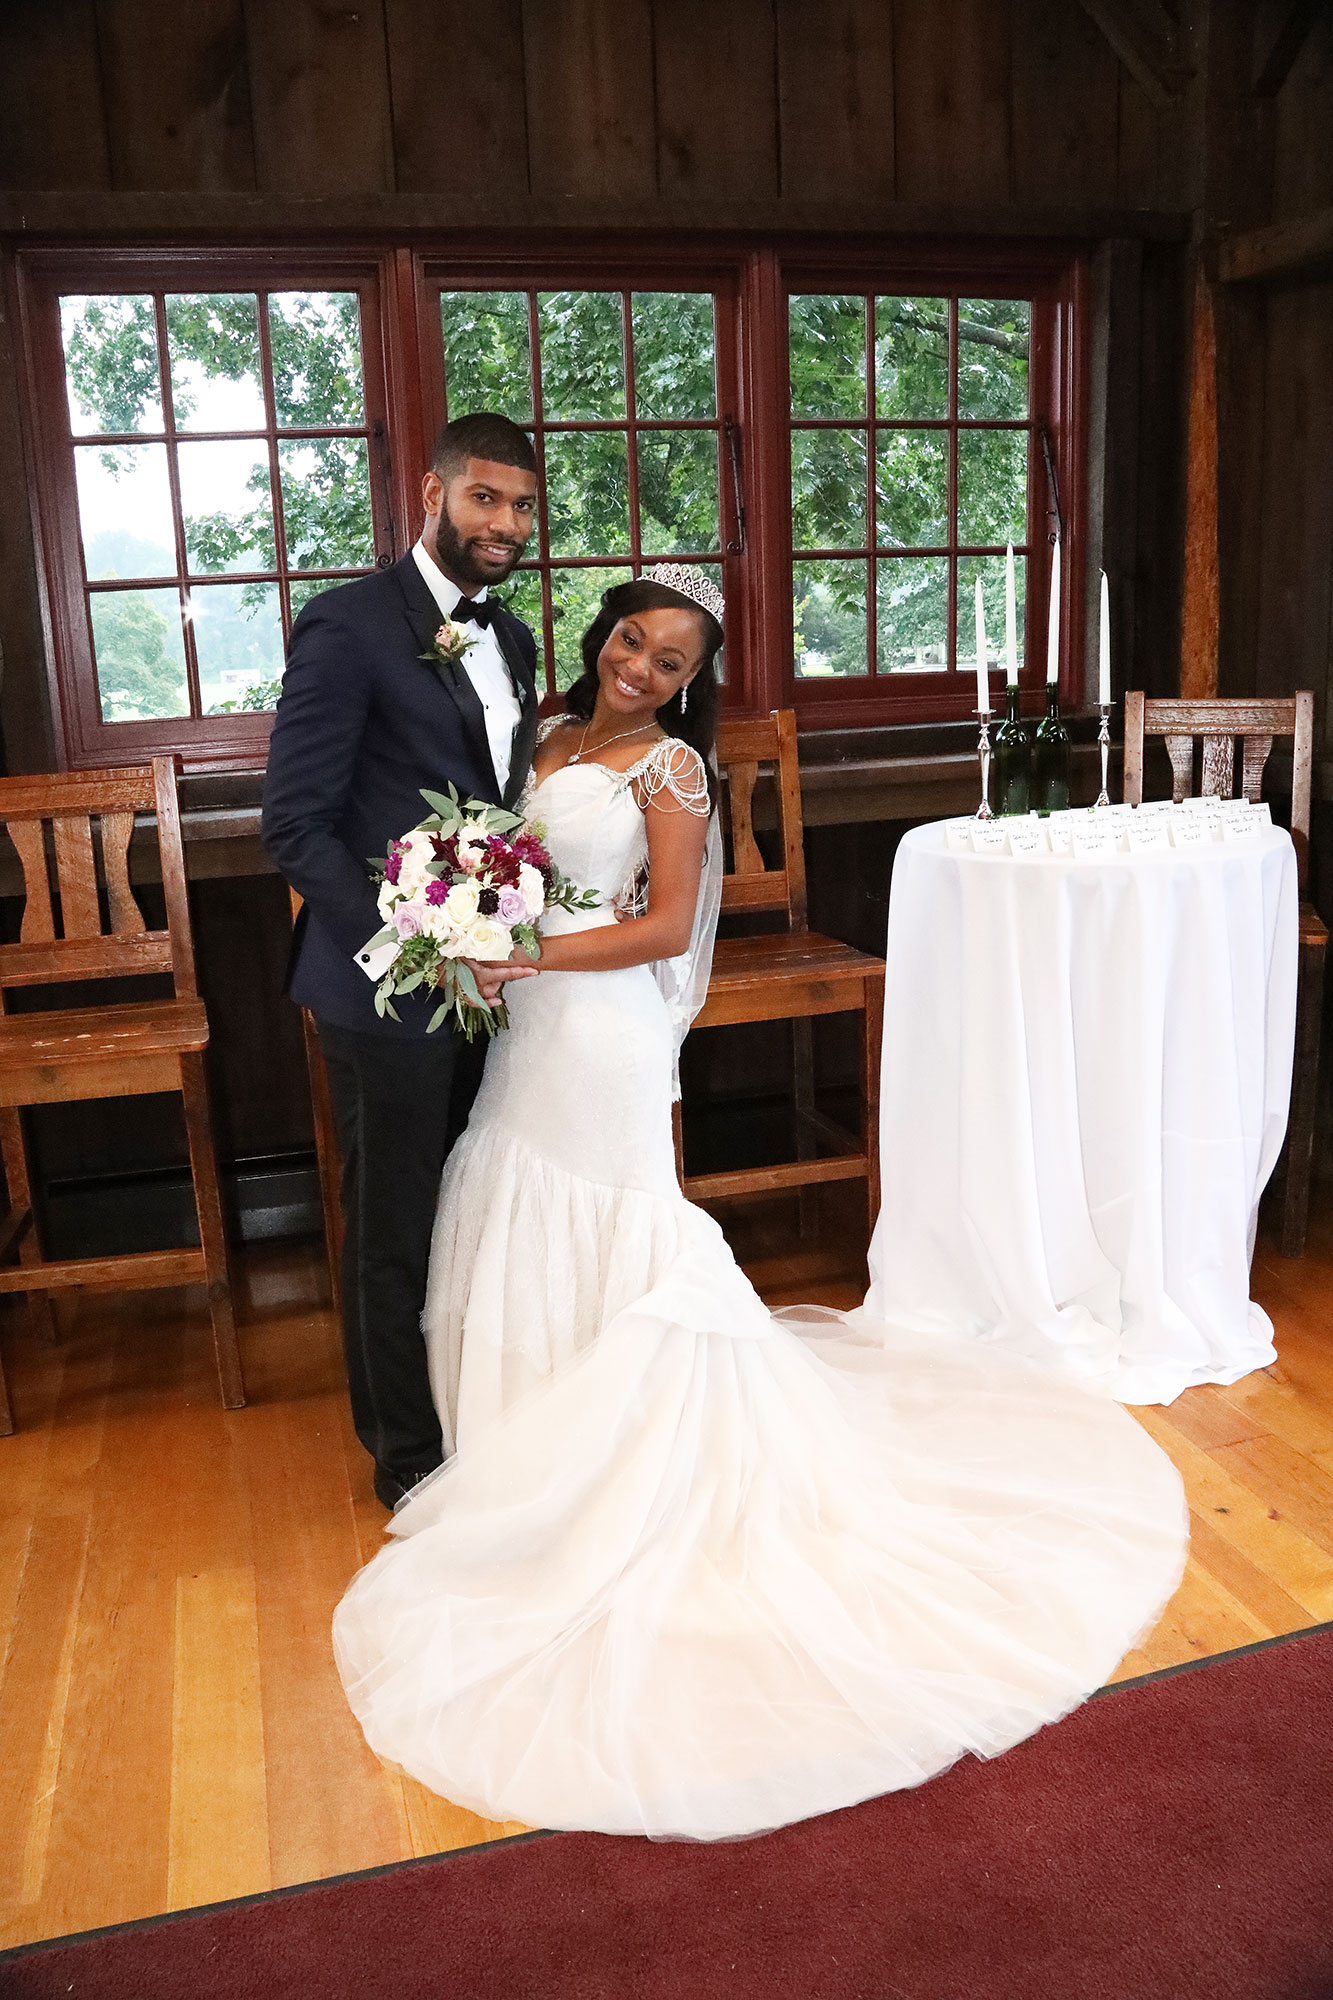 Married at First Sight' Season 8 Couples Revealed